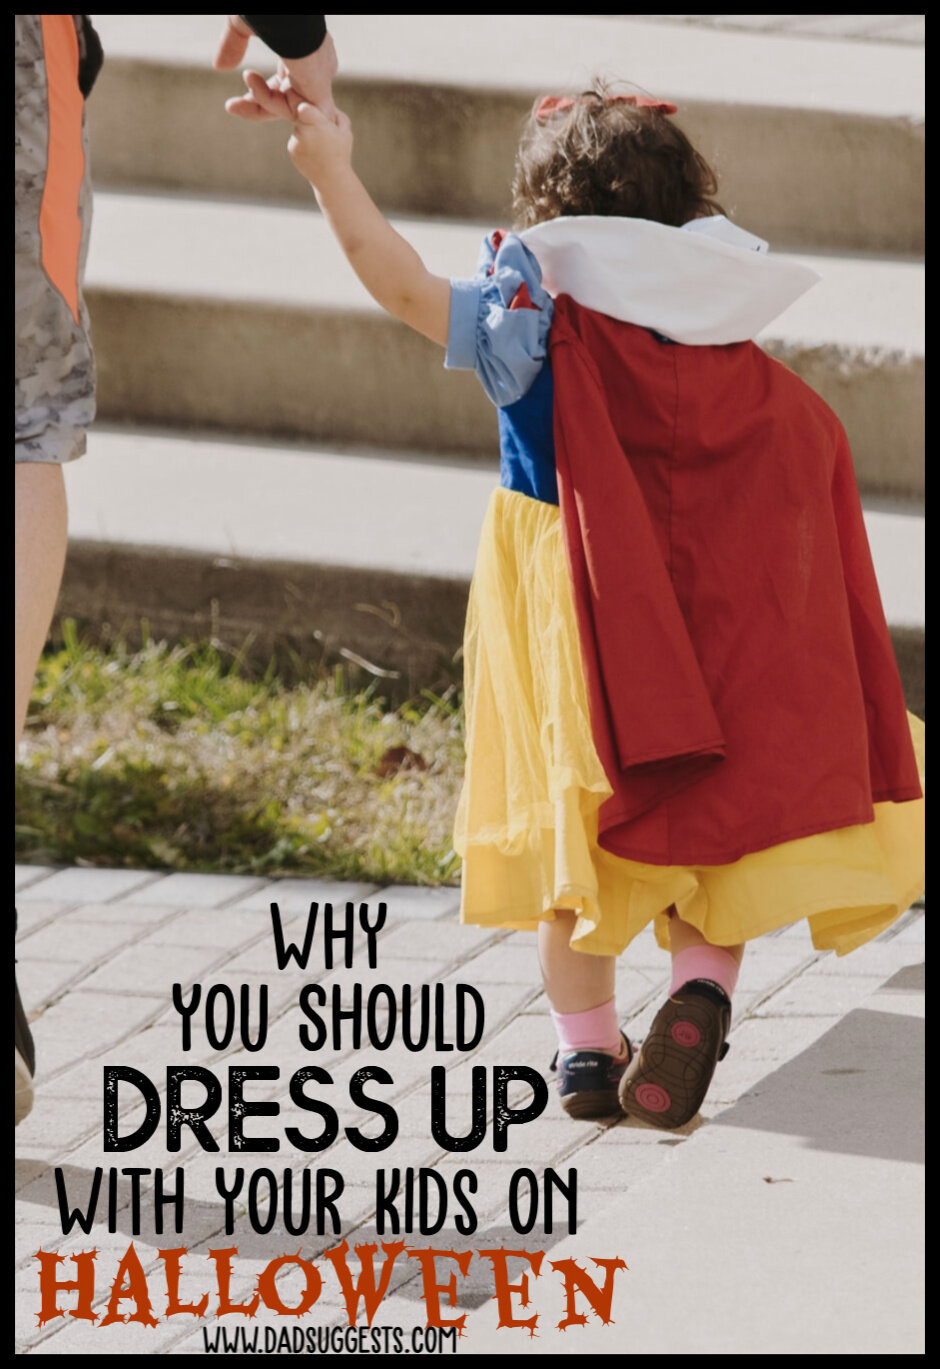 Parents should definitely dress up with their young kids on Halloween. The potential consequences of sitting out the spooky festivities simply pose too big of a threat to those precious childhood imaginations. So put on those silly costumes, adults! #familyhalloween #halloween #halloweencostumes #parenting #imagination #dadsuggests